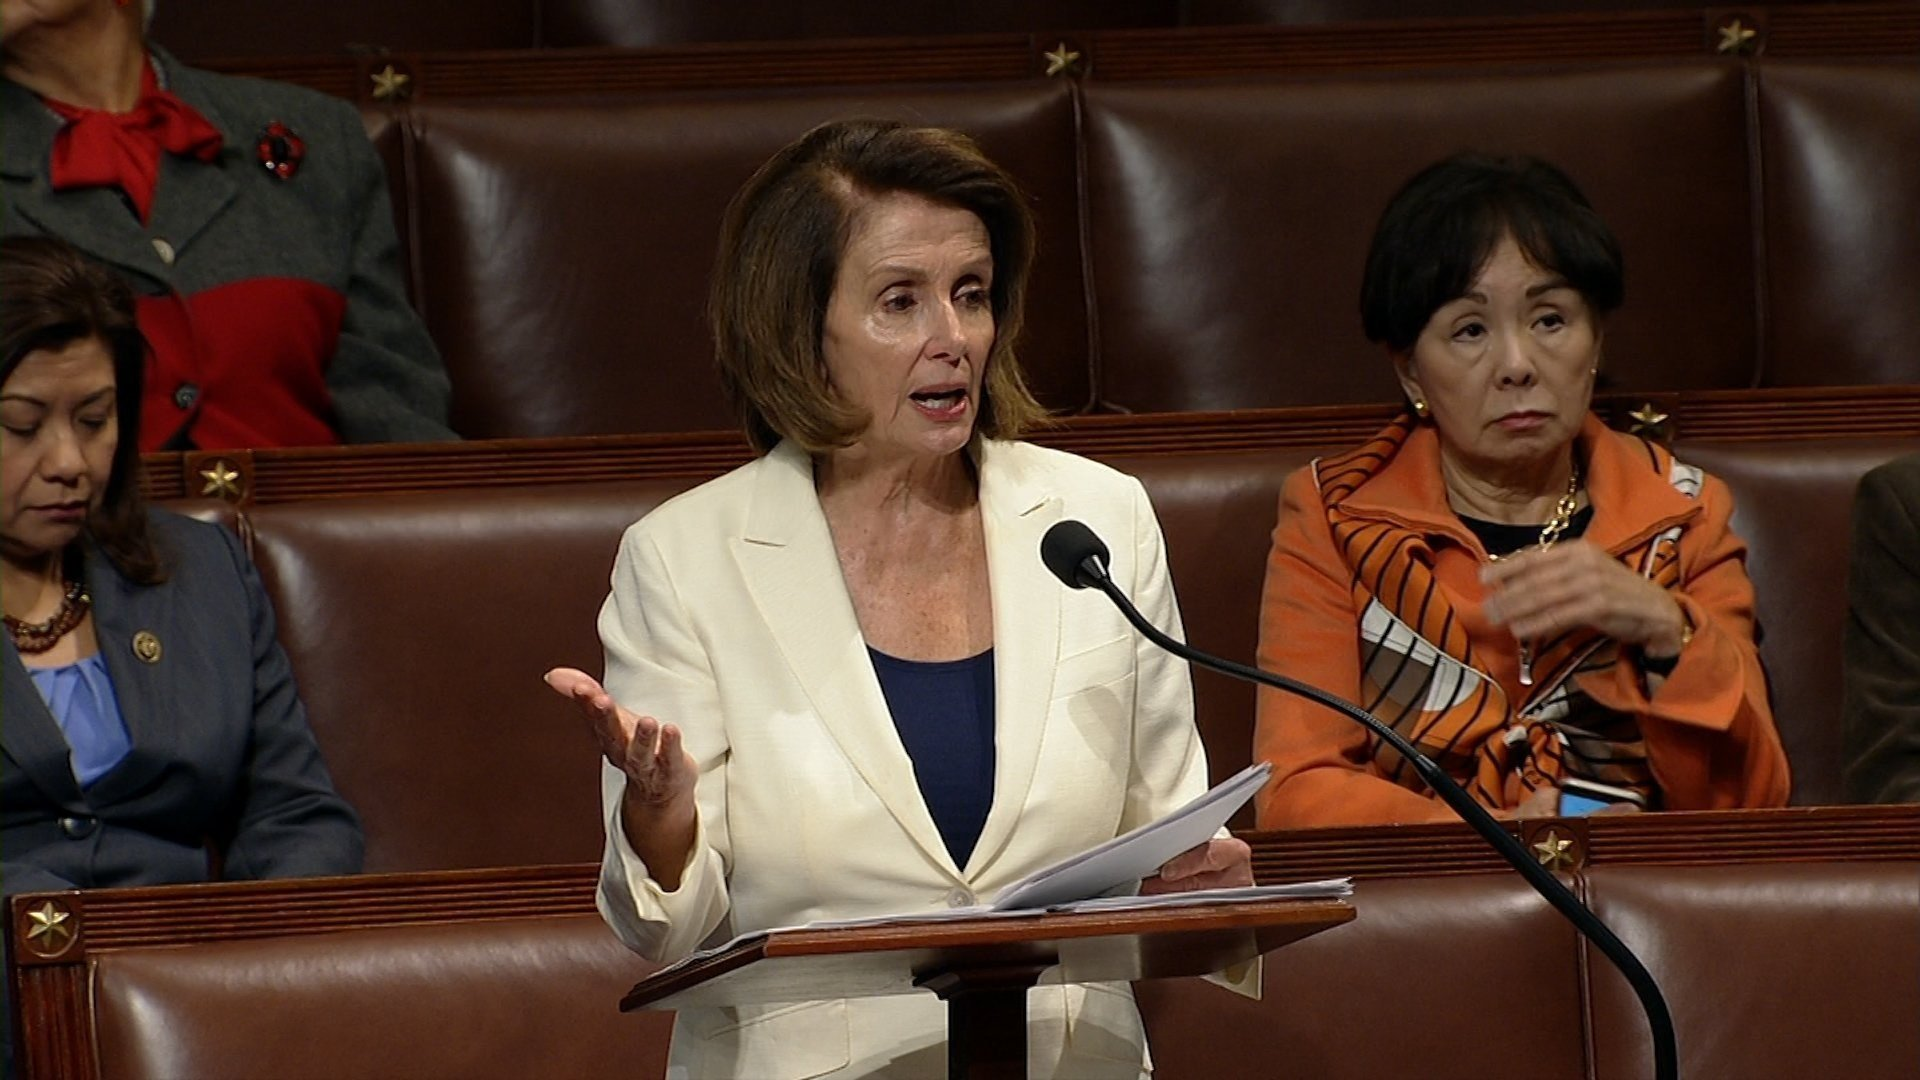 House Minority Leader Nancy Pelosi called for more women to get involved in politics and use their power, during a speech celebrating her tenure as the first female House speaker in US history. (File Photo)